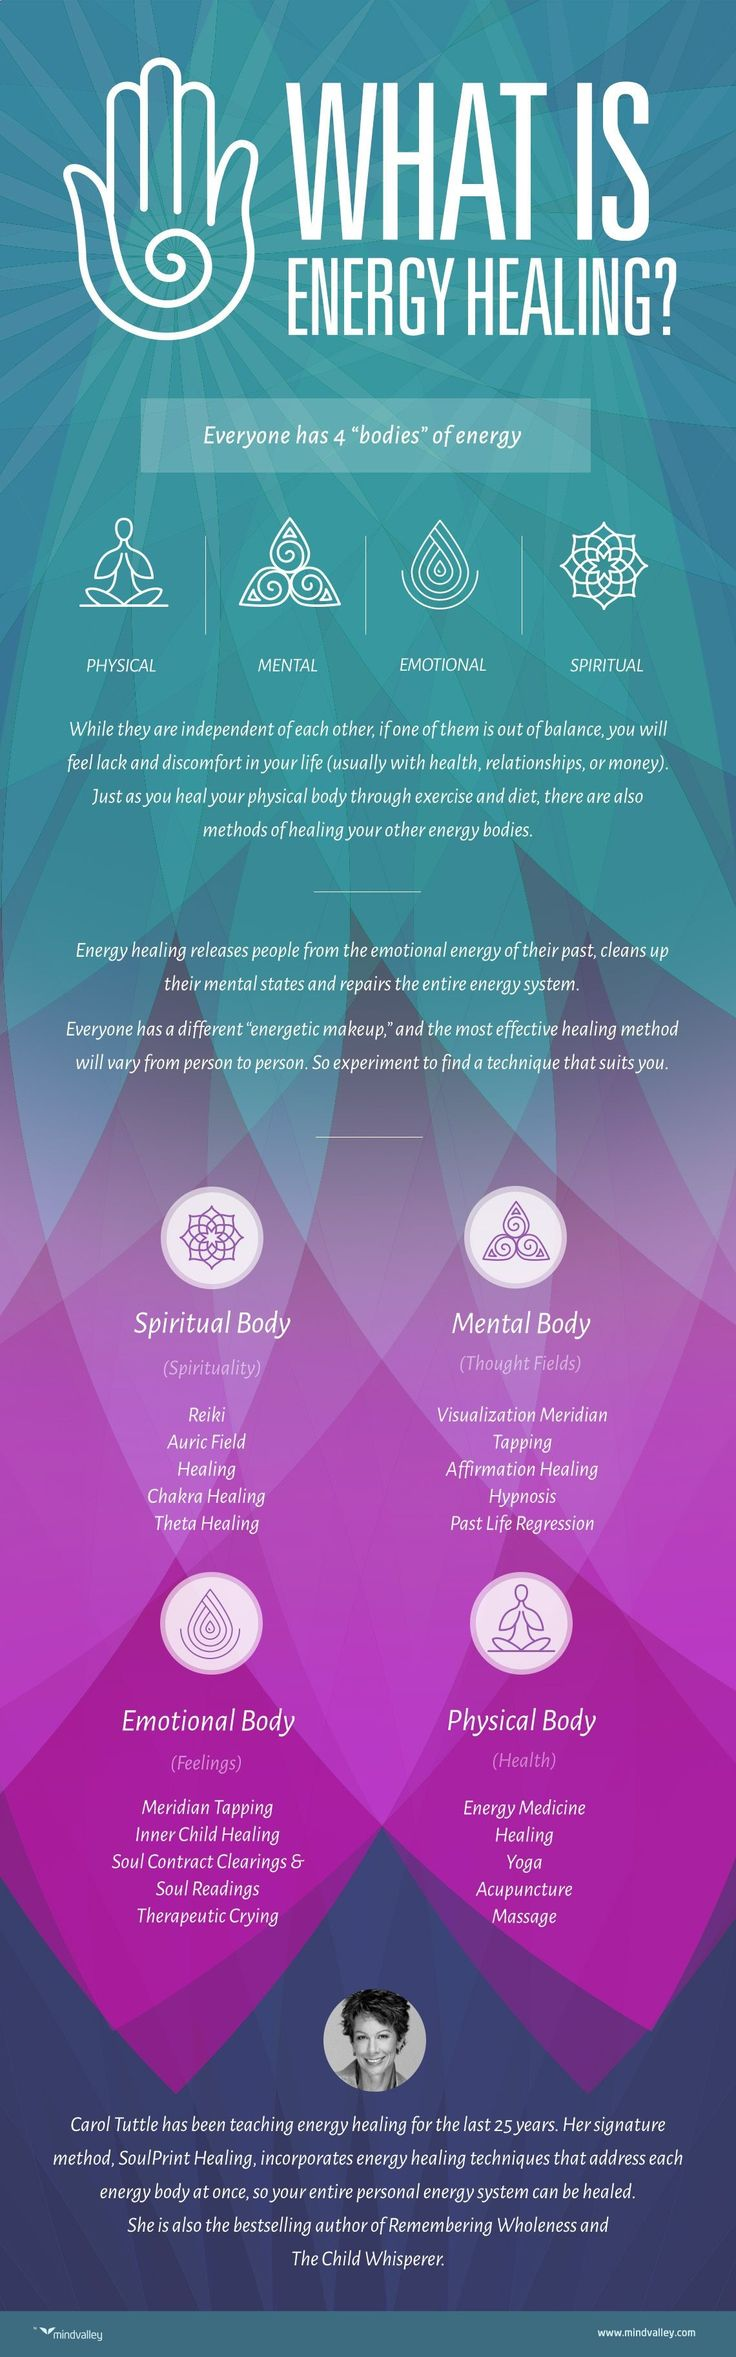 401 best reiki symbols images on pinterest reiki symbols shared by vivi sasaki certified marriage coach at mentarena amazing secret discovered by middle aged construction worker releases buycottarizona Choice Image